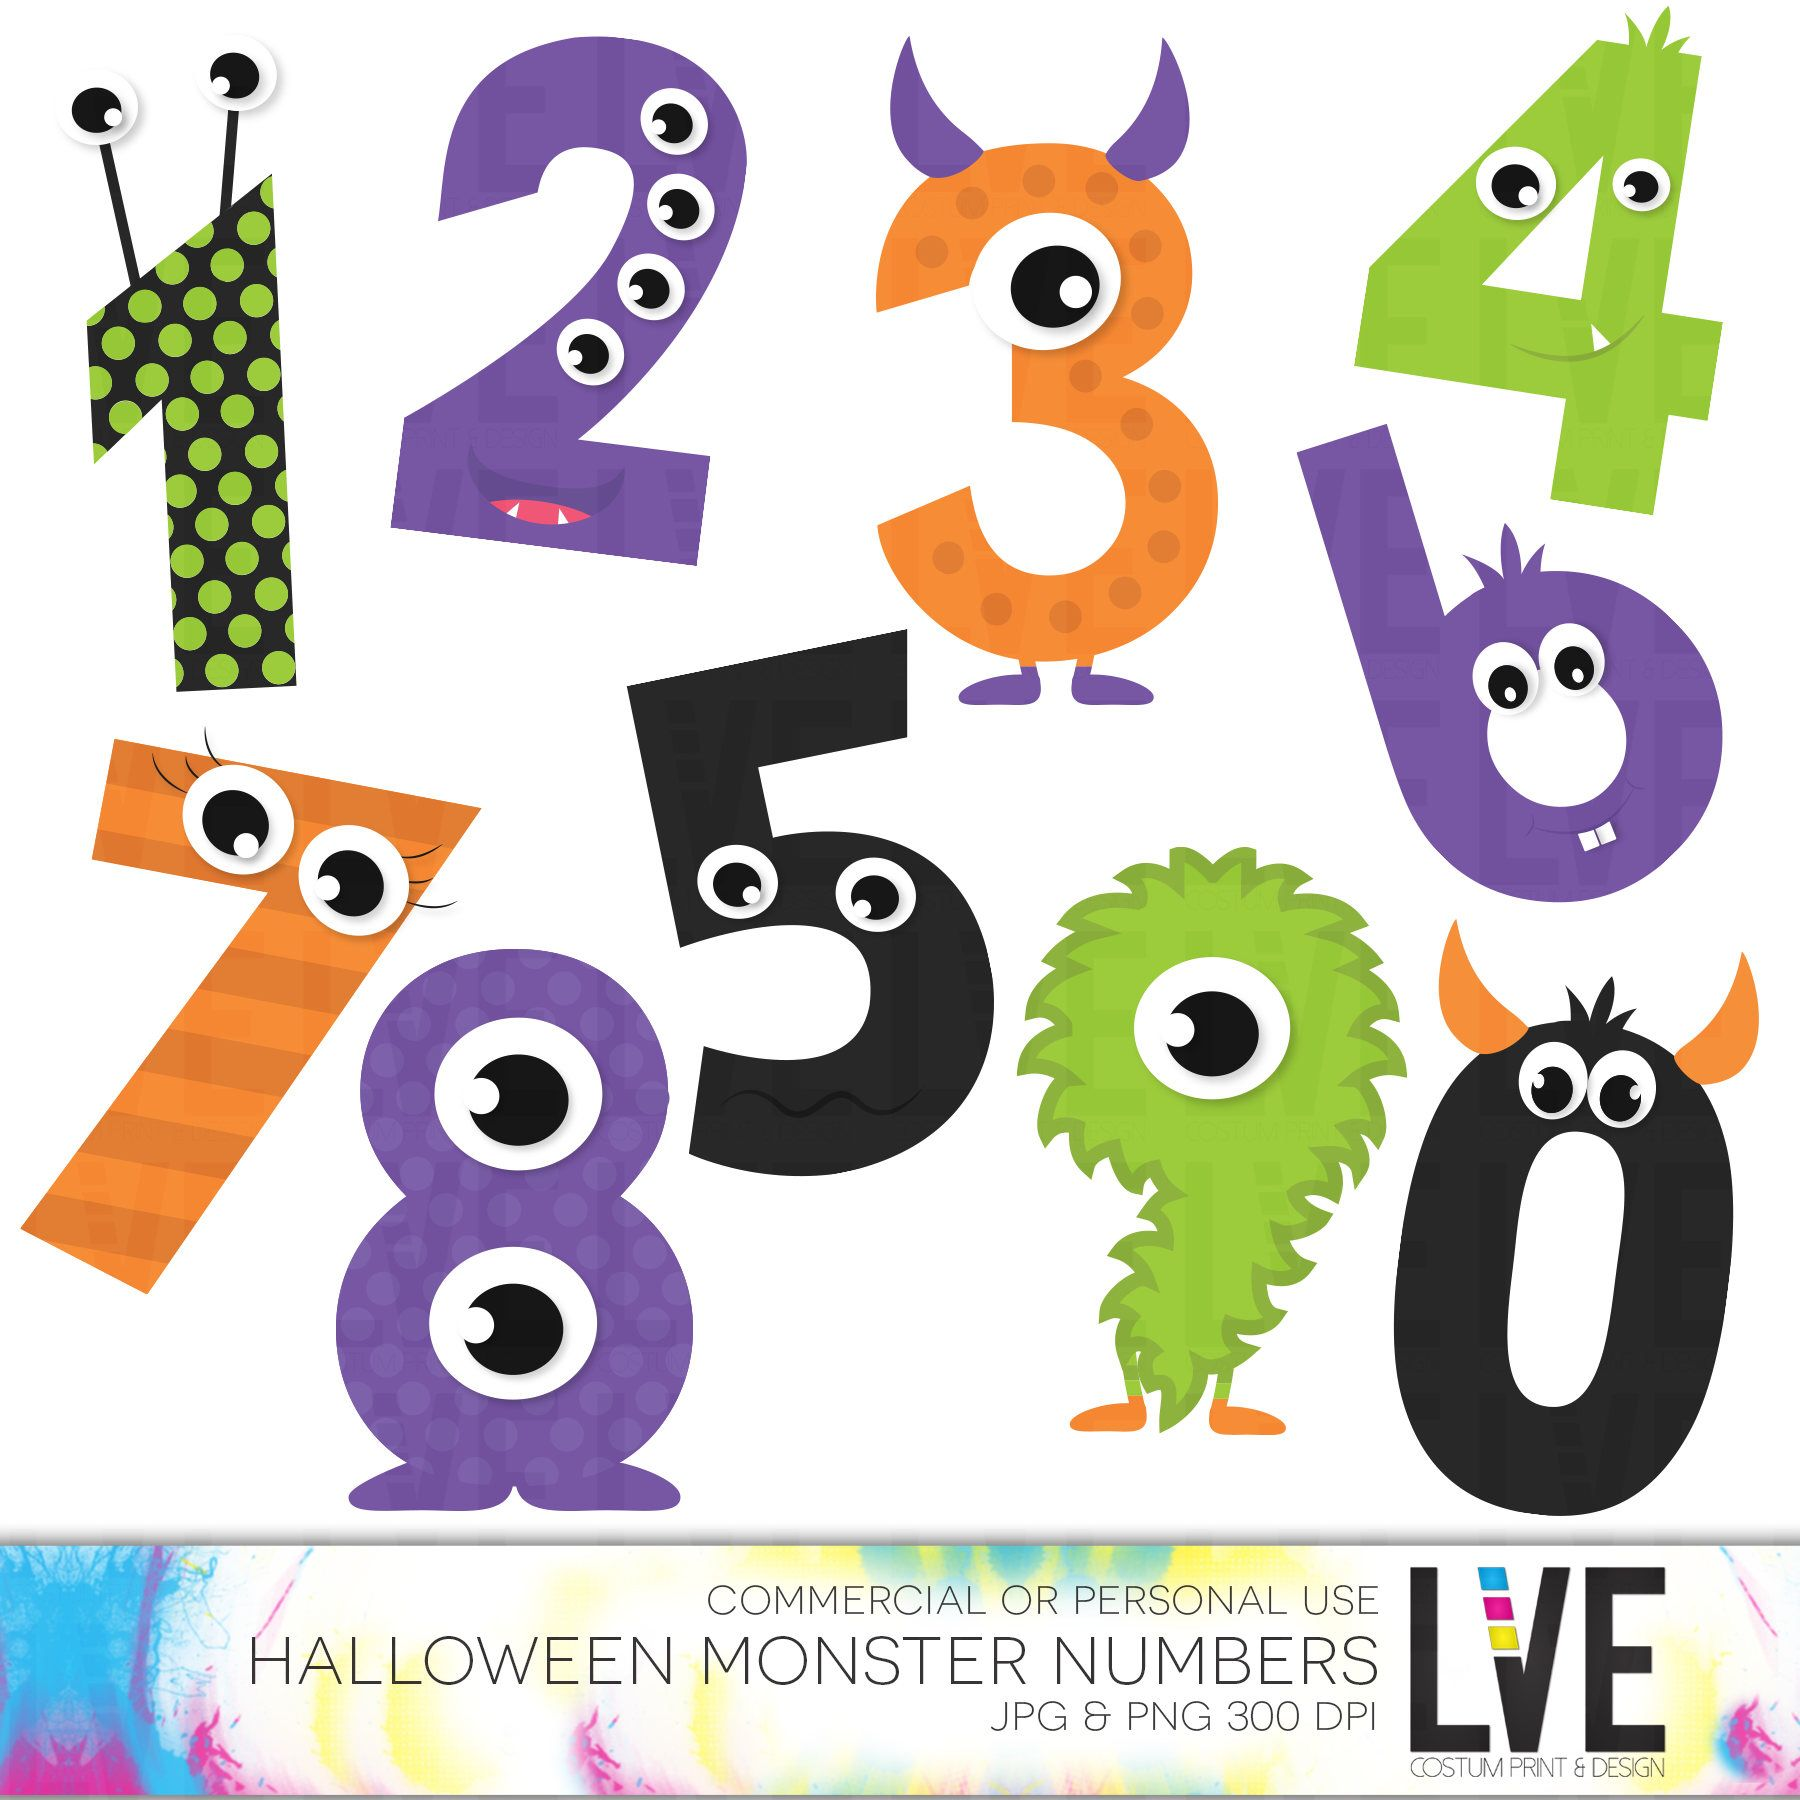 Cute Monsters Numbers Clip Art Halloween Clipart Monster.